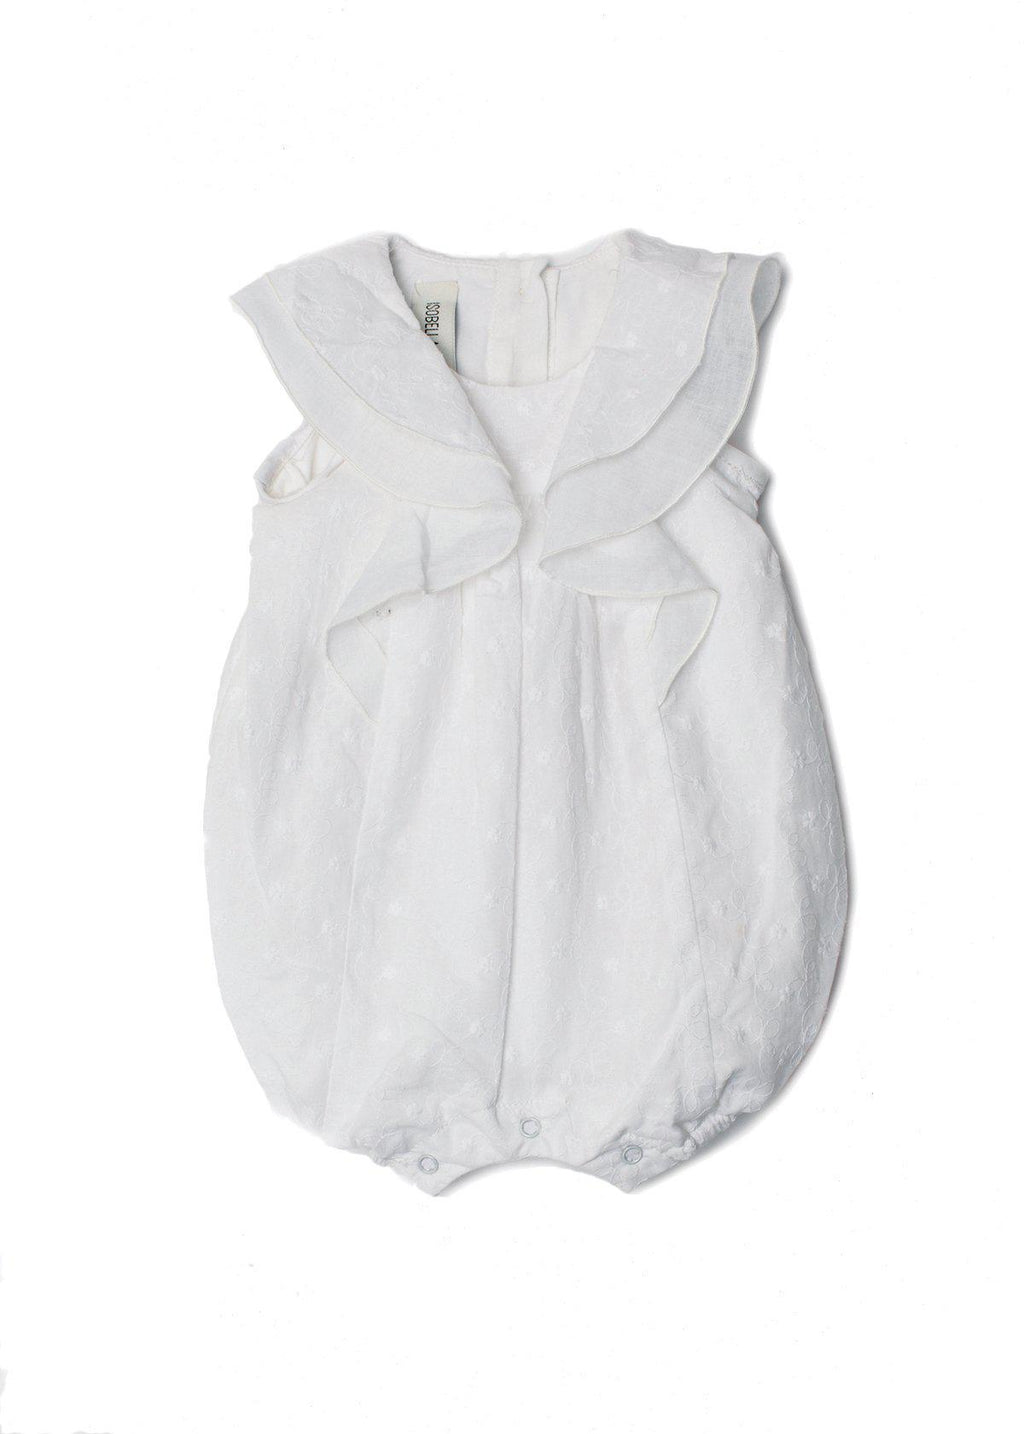 Ava May Romper White